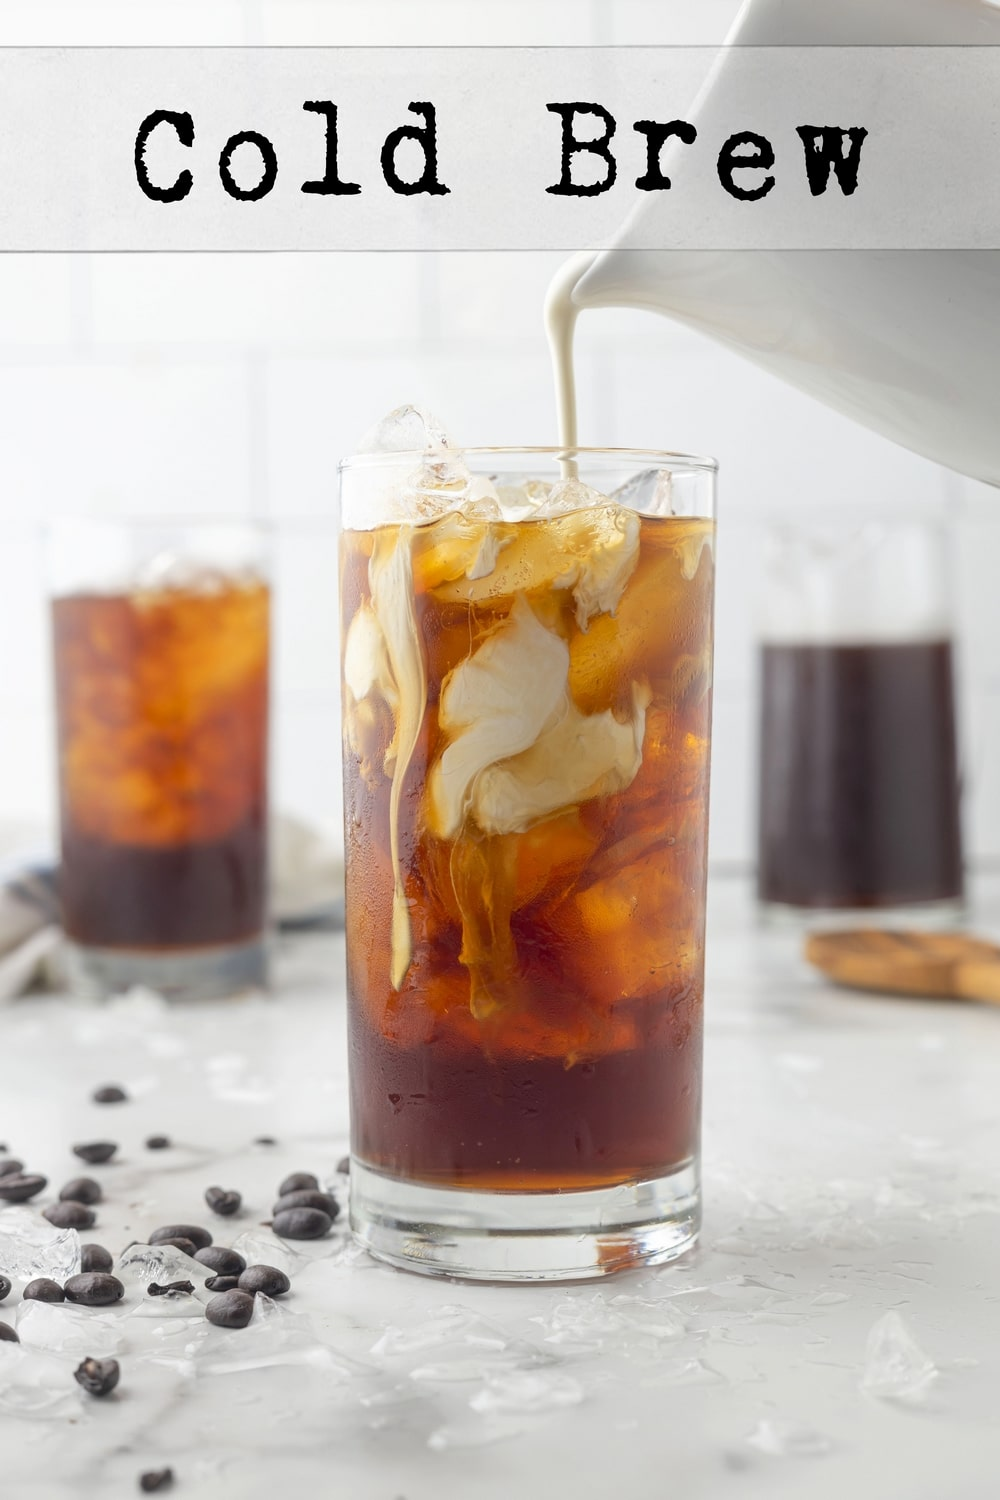 Easily make a batch of cold brew at home and skip the long drive-thru line at the coffee house. If you have never tried cold brew coffee, this is your chance to enjoy it. via @cmpollak1